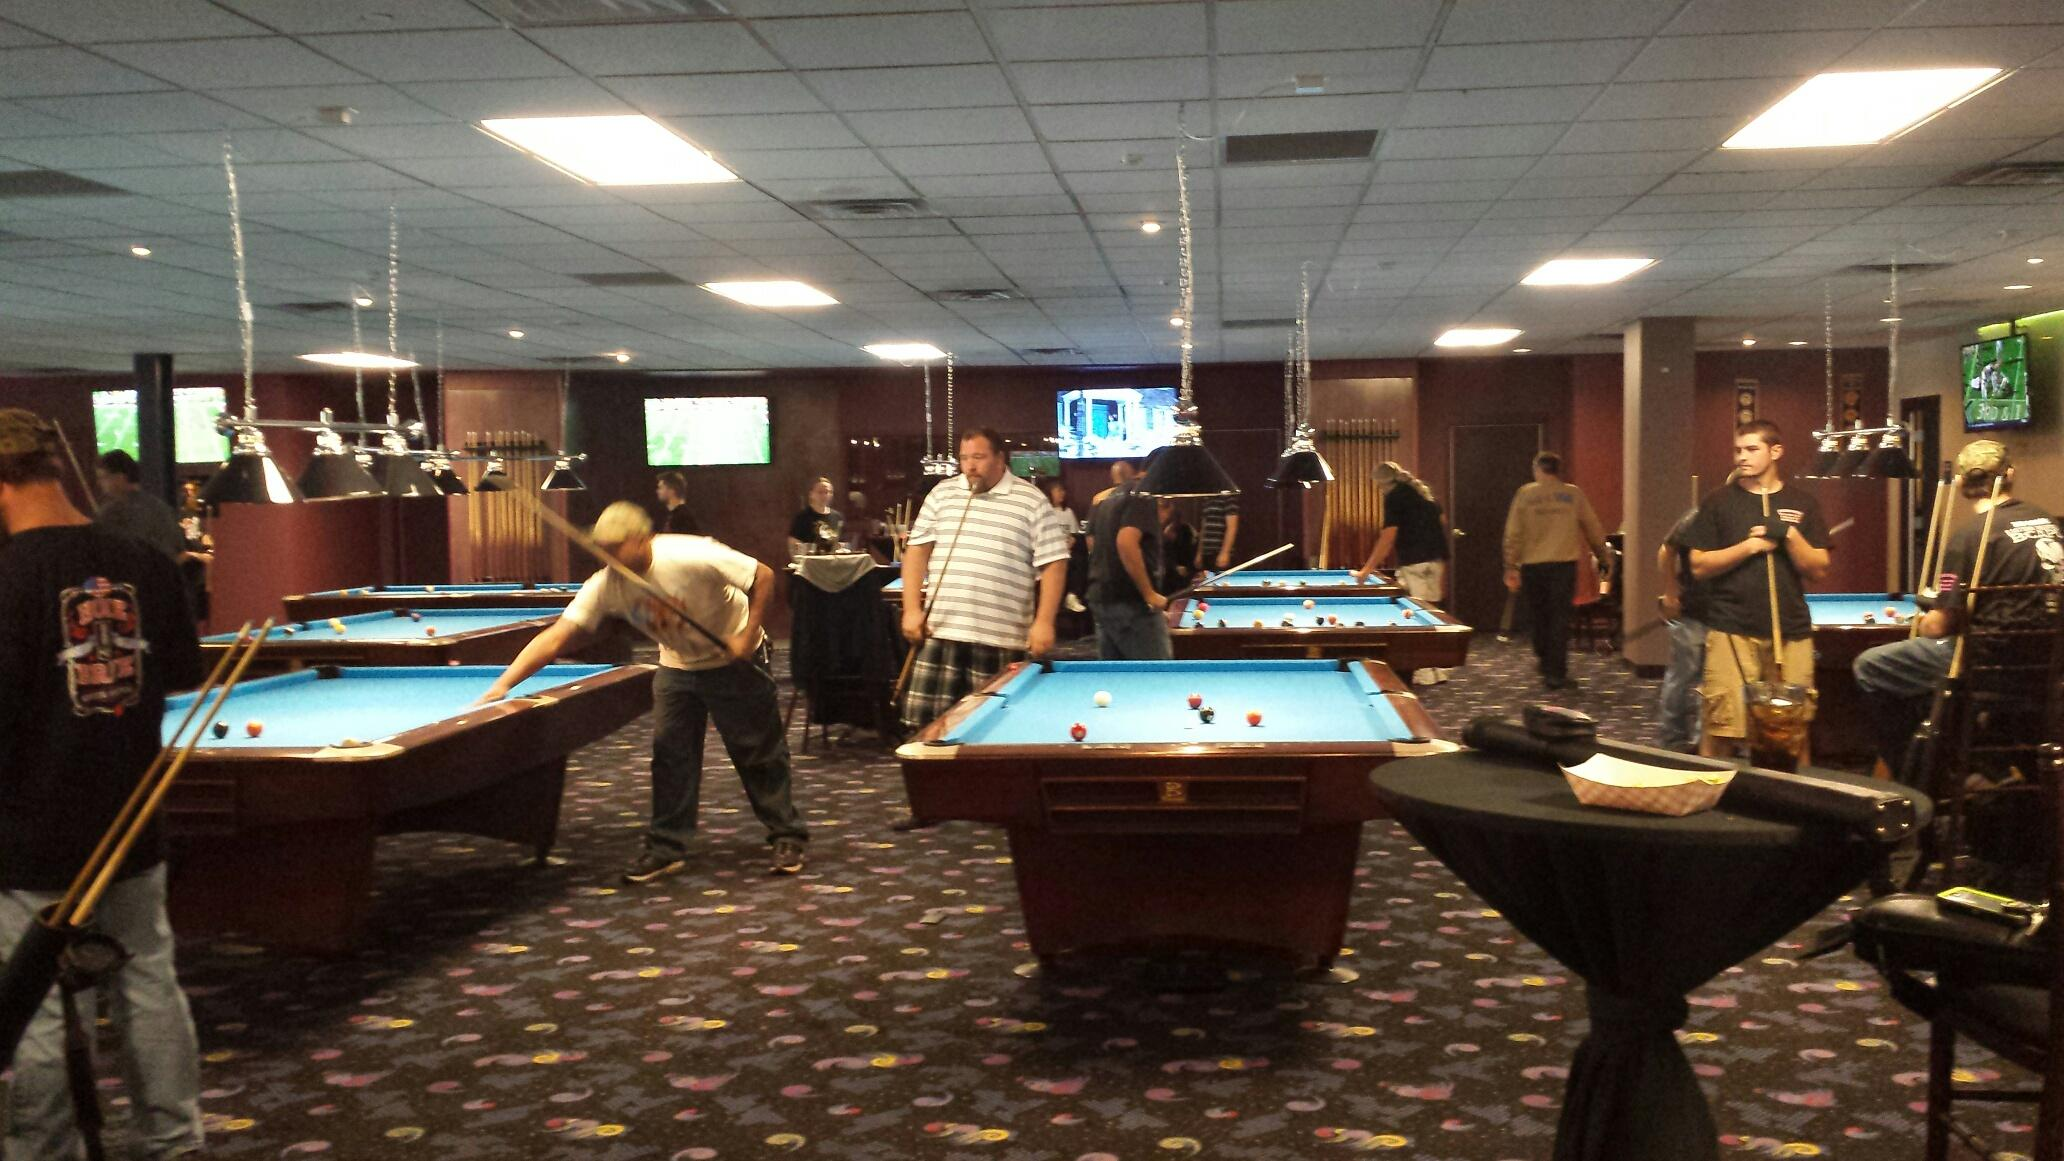 Flix Sports Bar Offers 10 Professional Size Pool Tables For Your Enjoyment.  We Are Also American Poolplayers Association (APA) Affiliated.